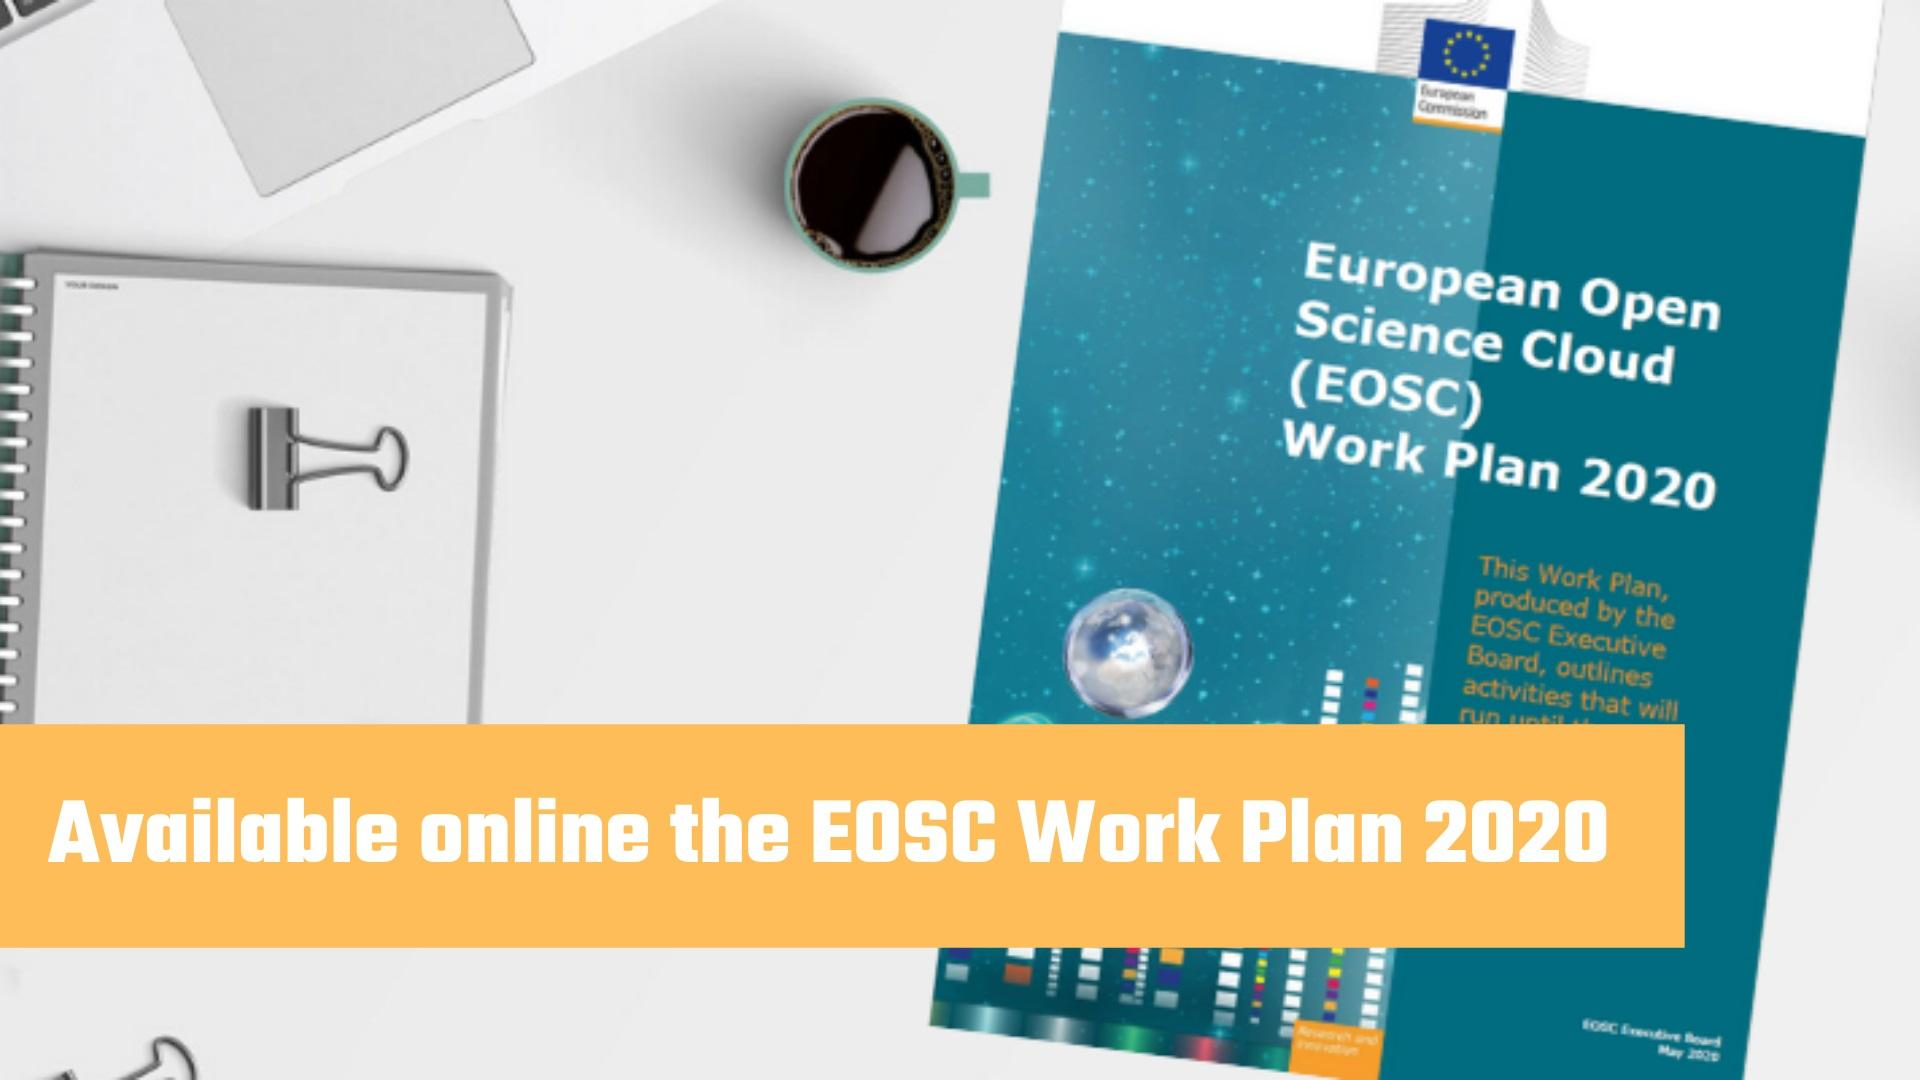 Available online the EOSC Work Plan 2020c